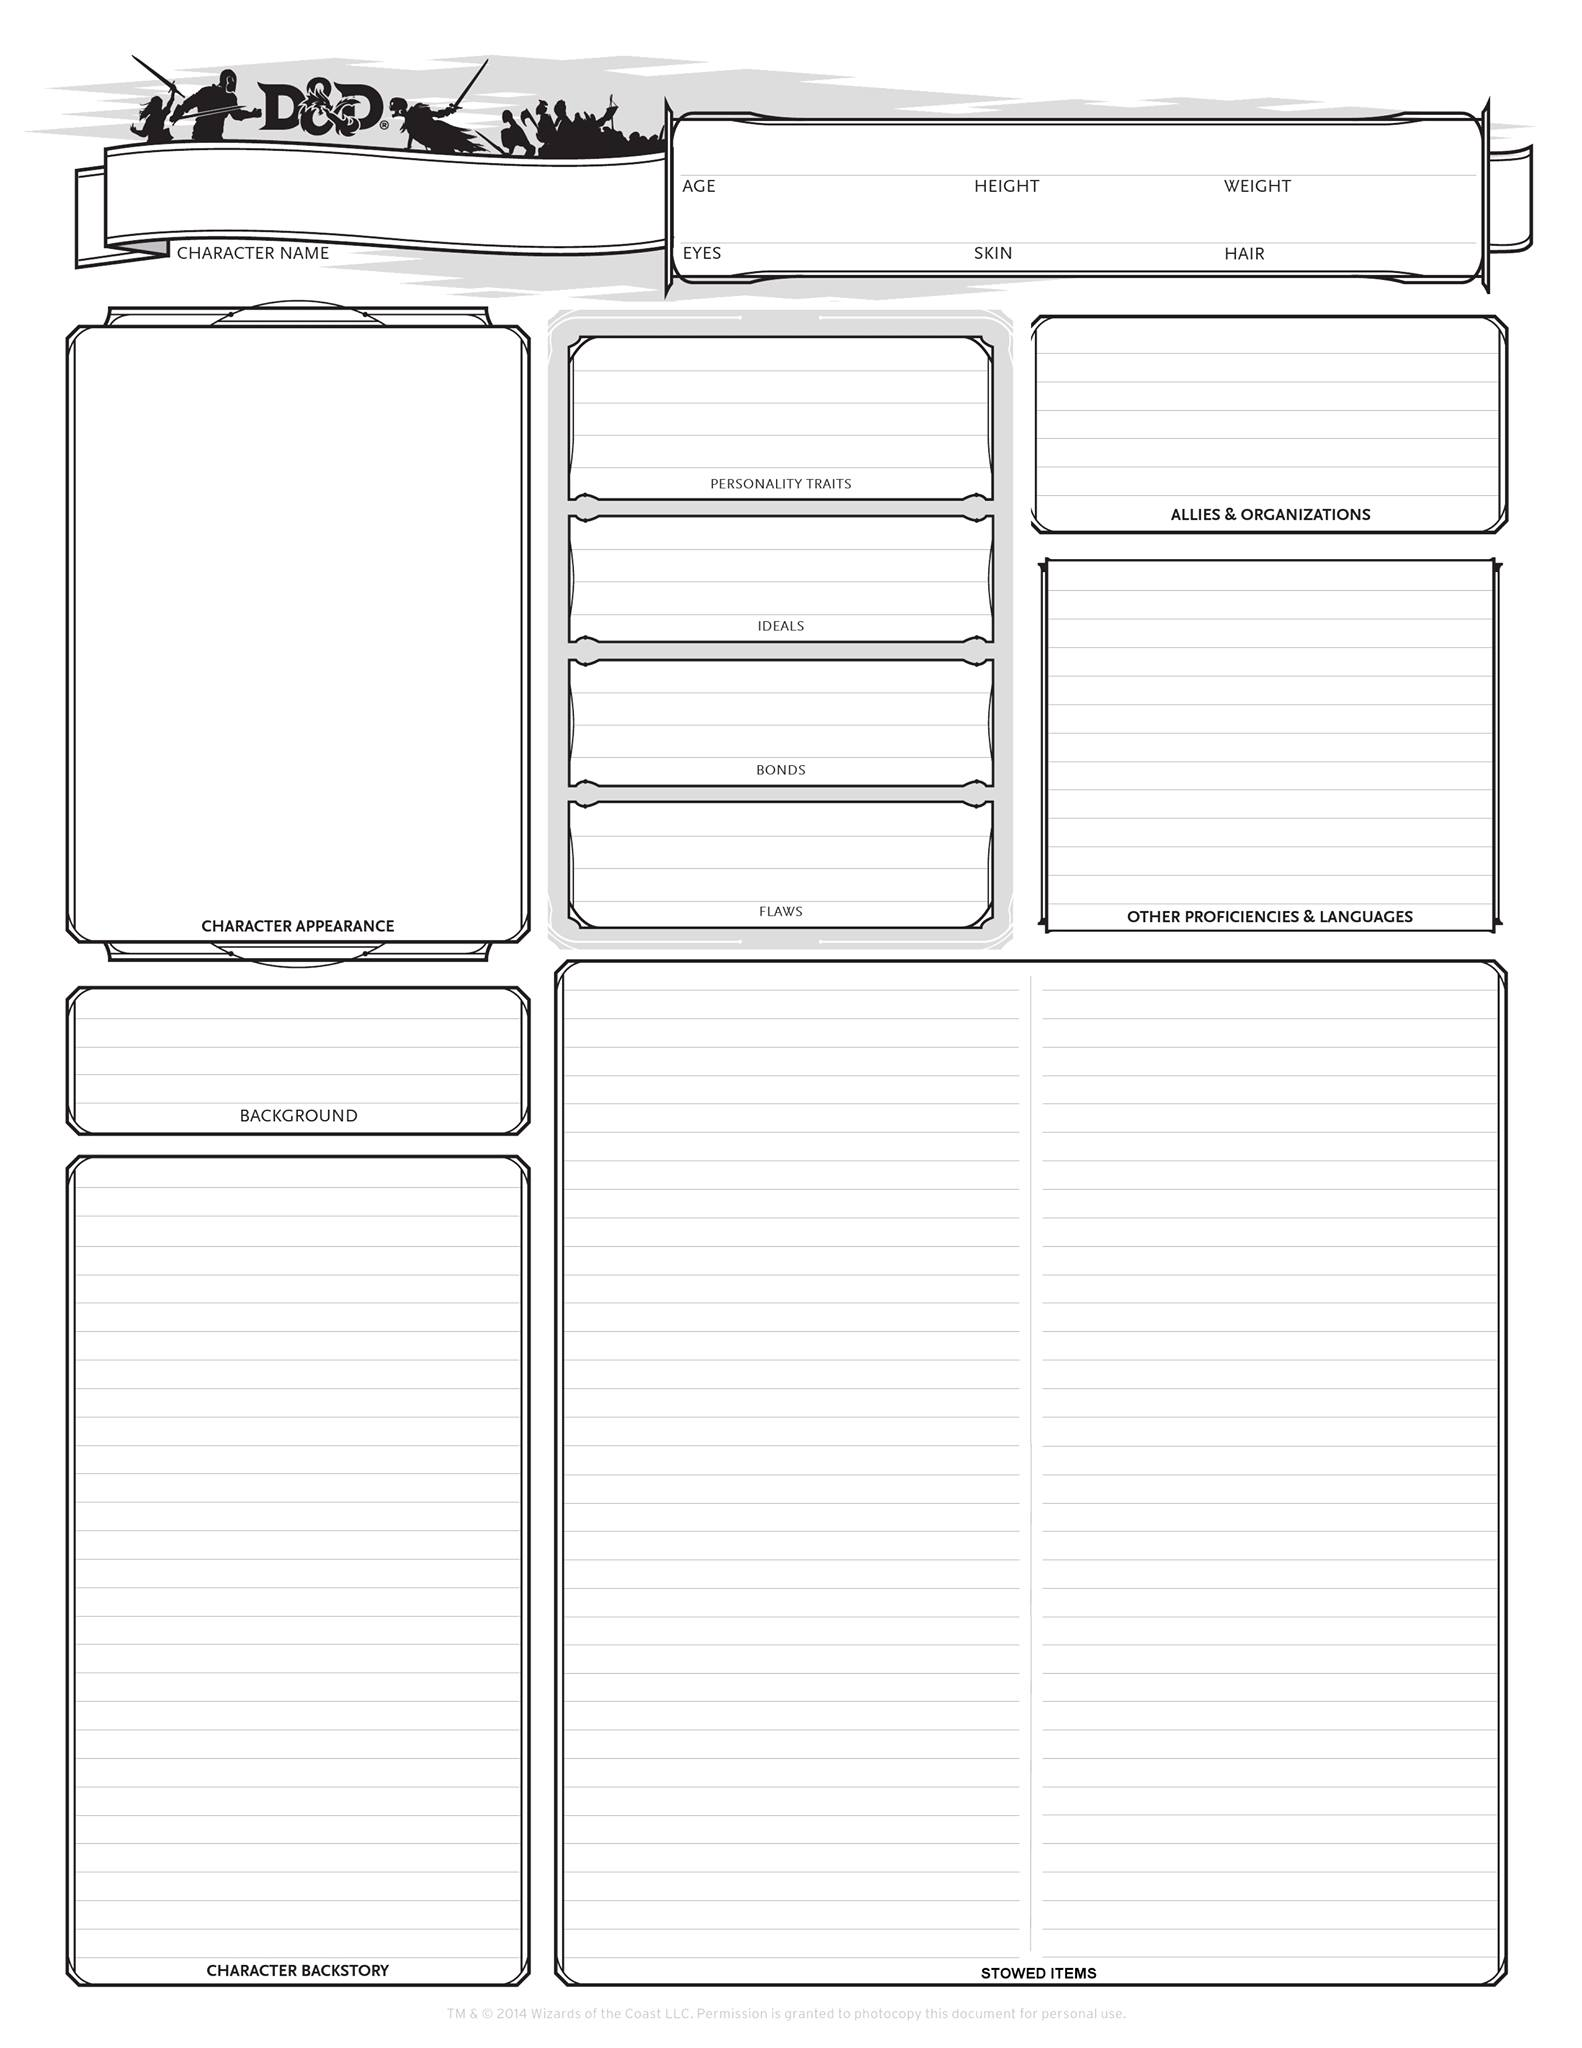 photo about Printable Dungeons and Dragons Character Sheet named DD 5e Substitute Individuality Sheets